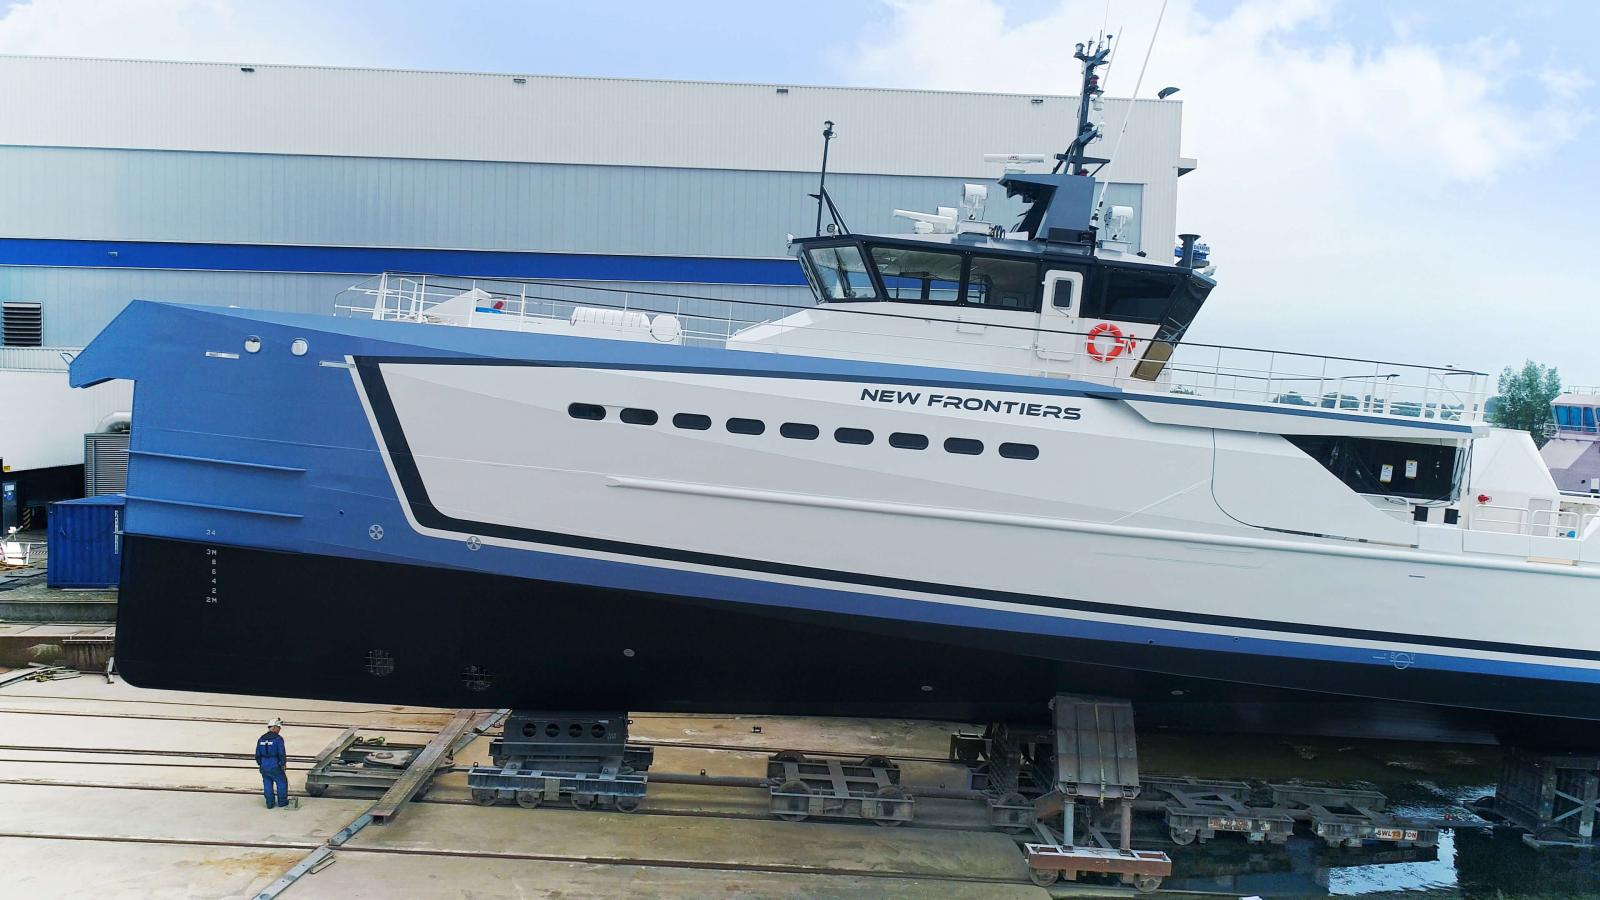 Damen New Frontiers at the Monaco Yacht Show